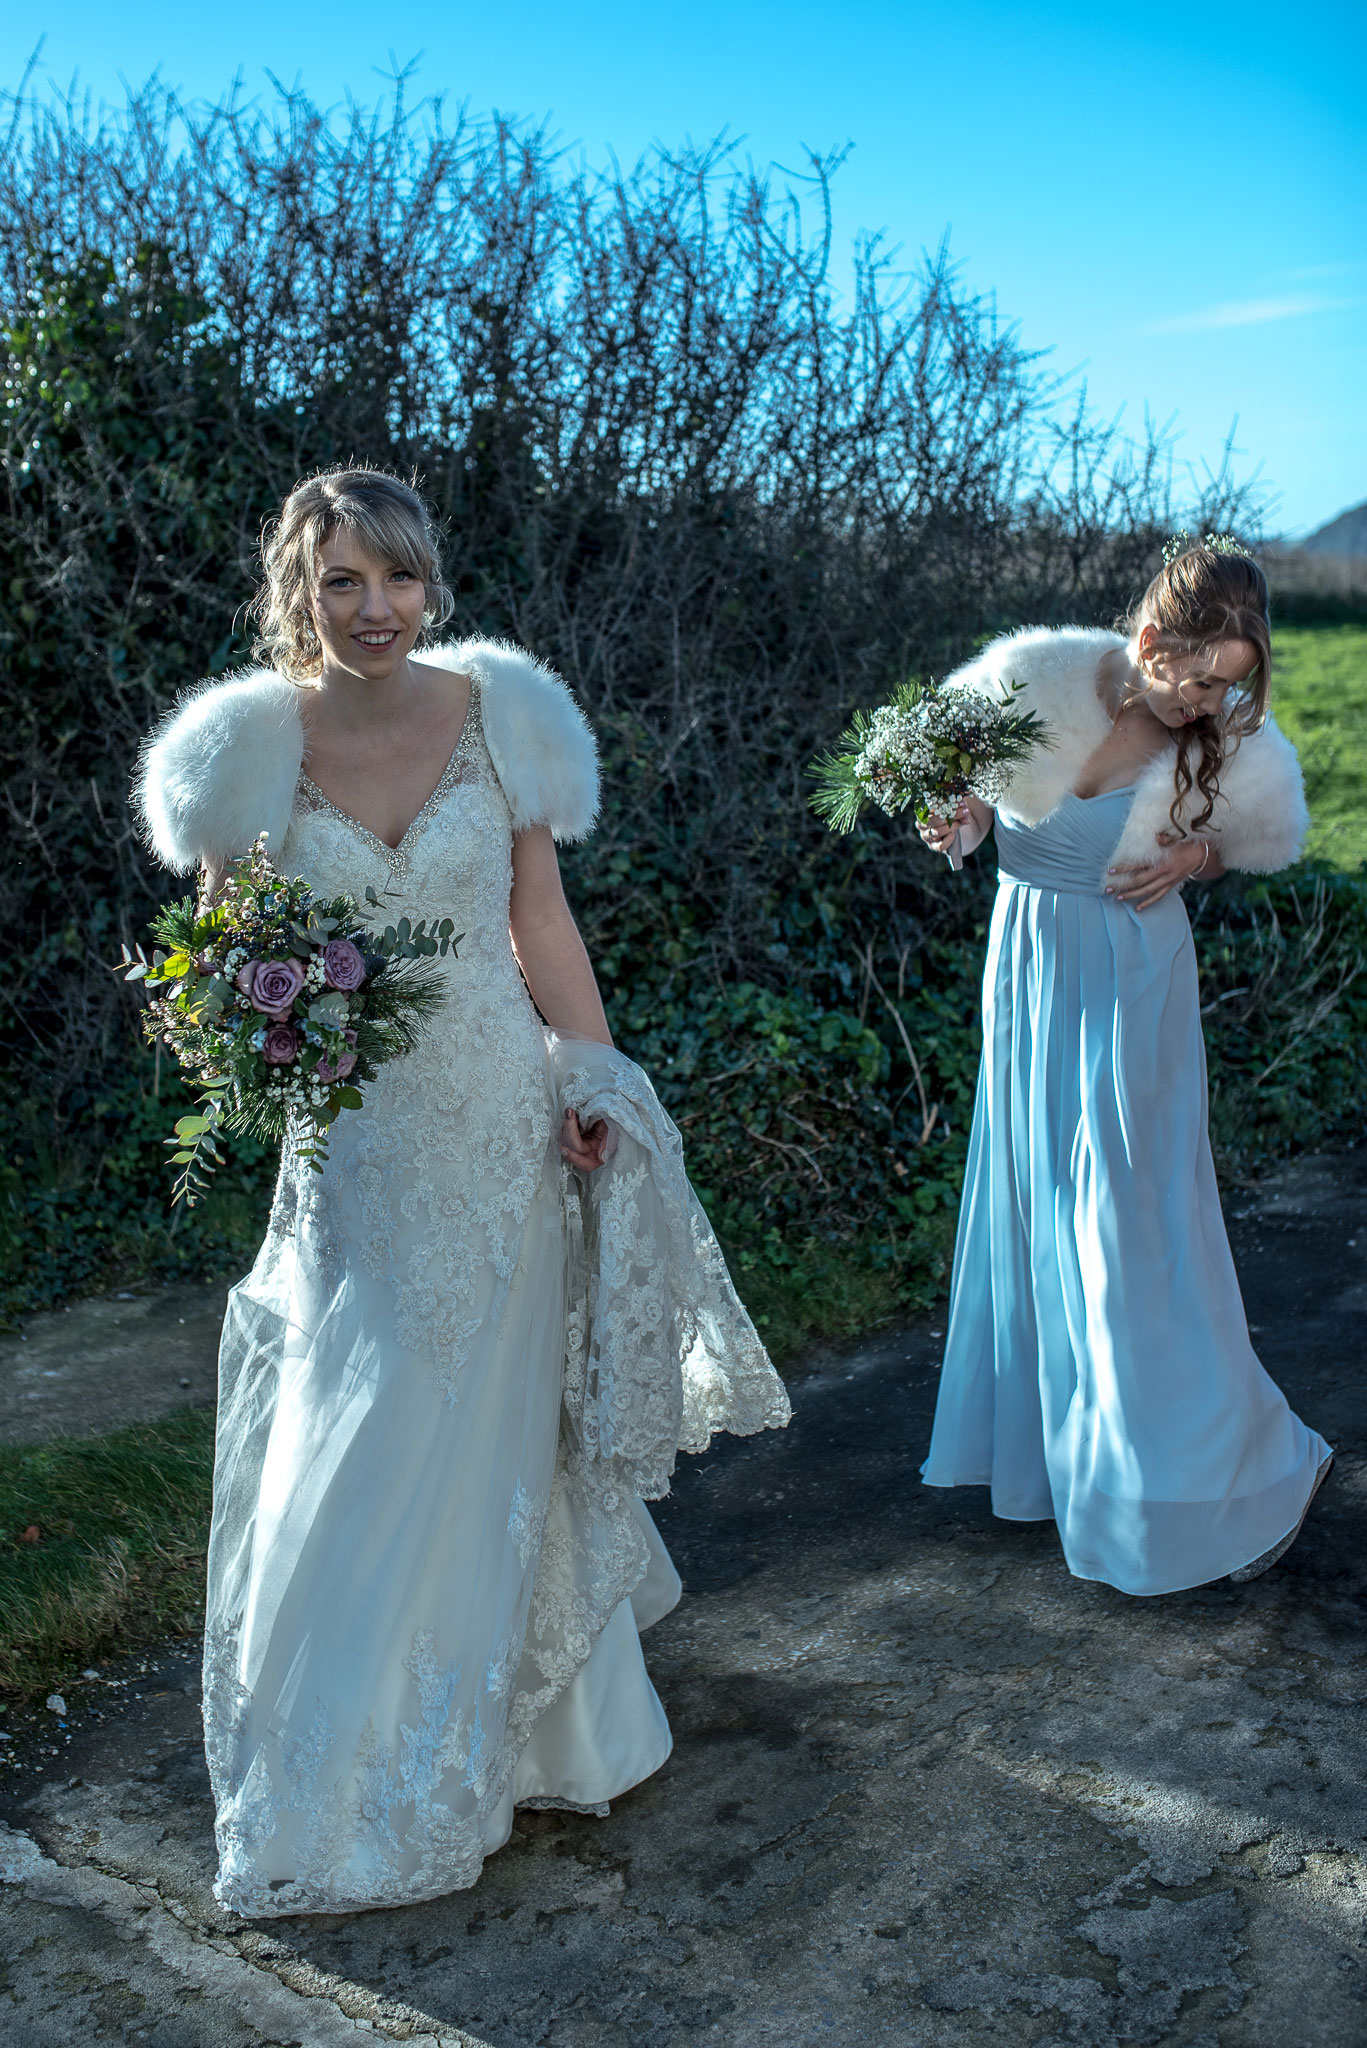 Plymouth Wedding Photography | Plymouth Wedding at Mount Batten ...